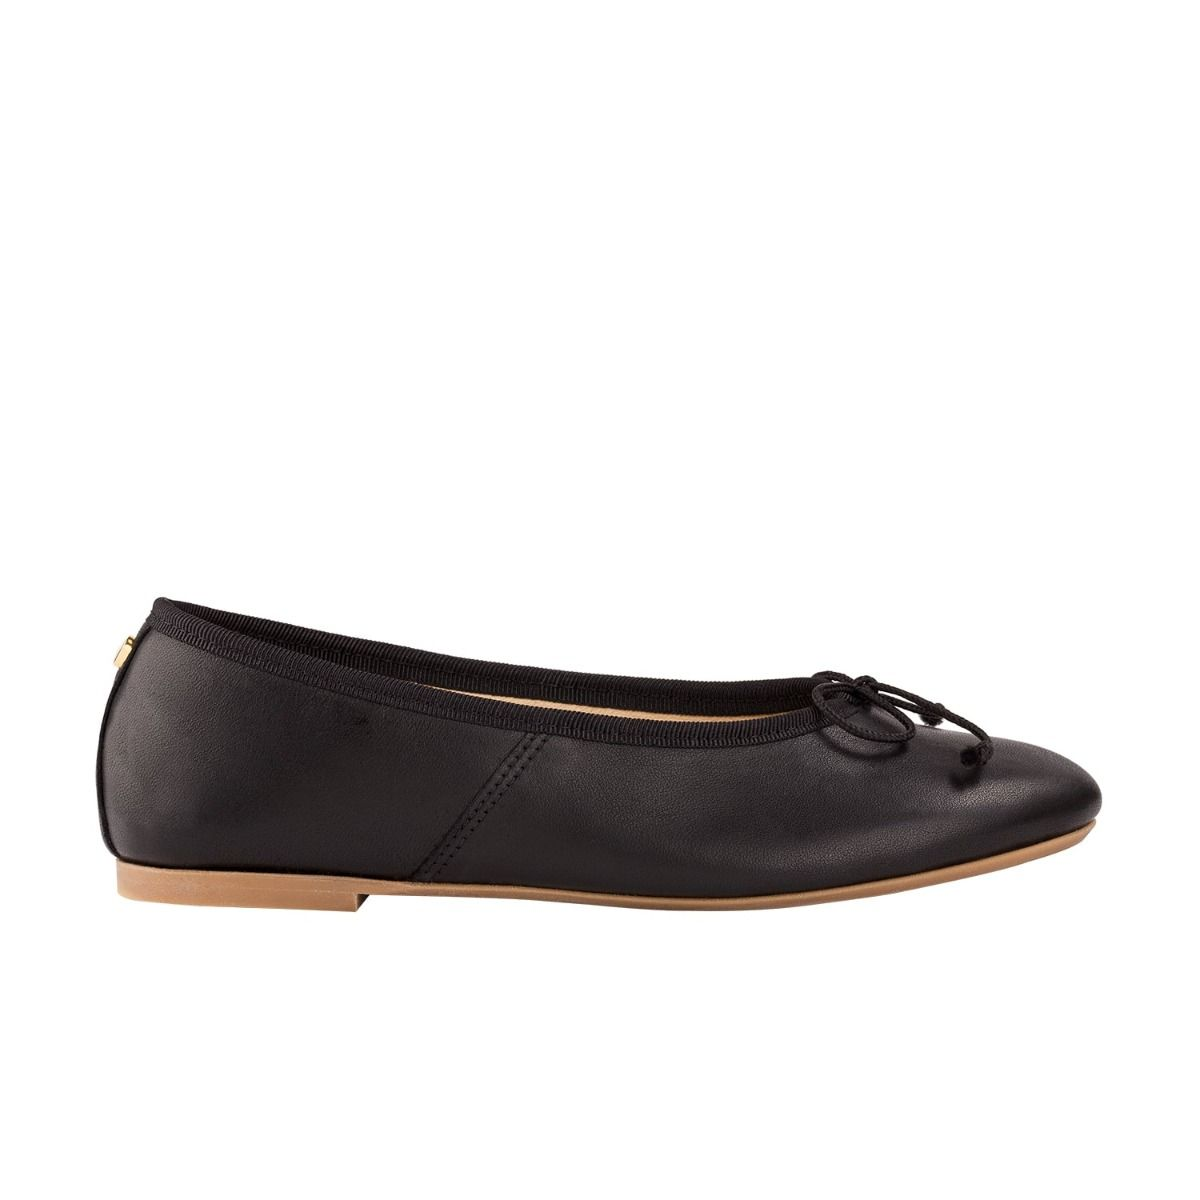 Children's ballet flats in black leather with bow detail in cord.